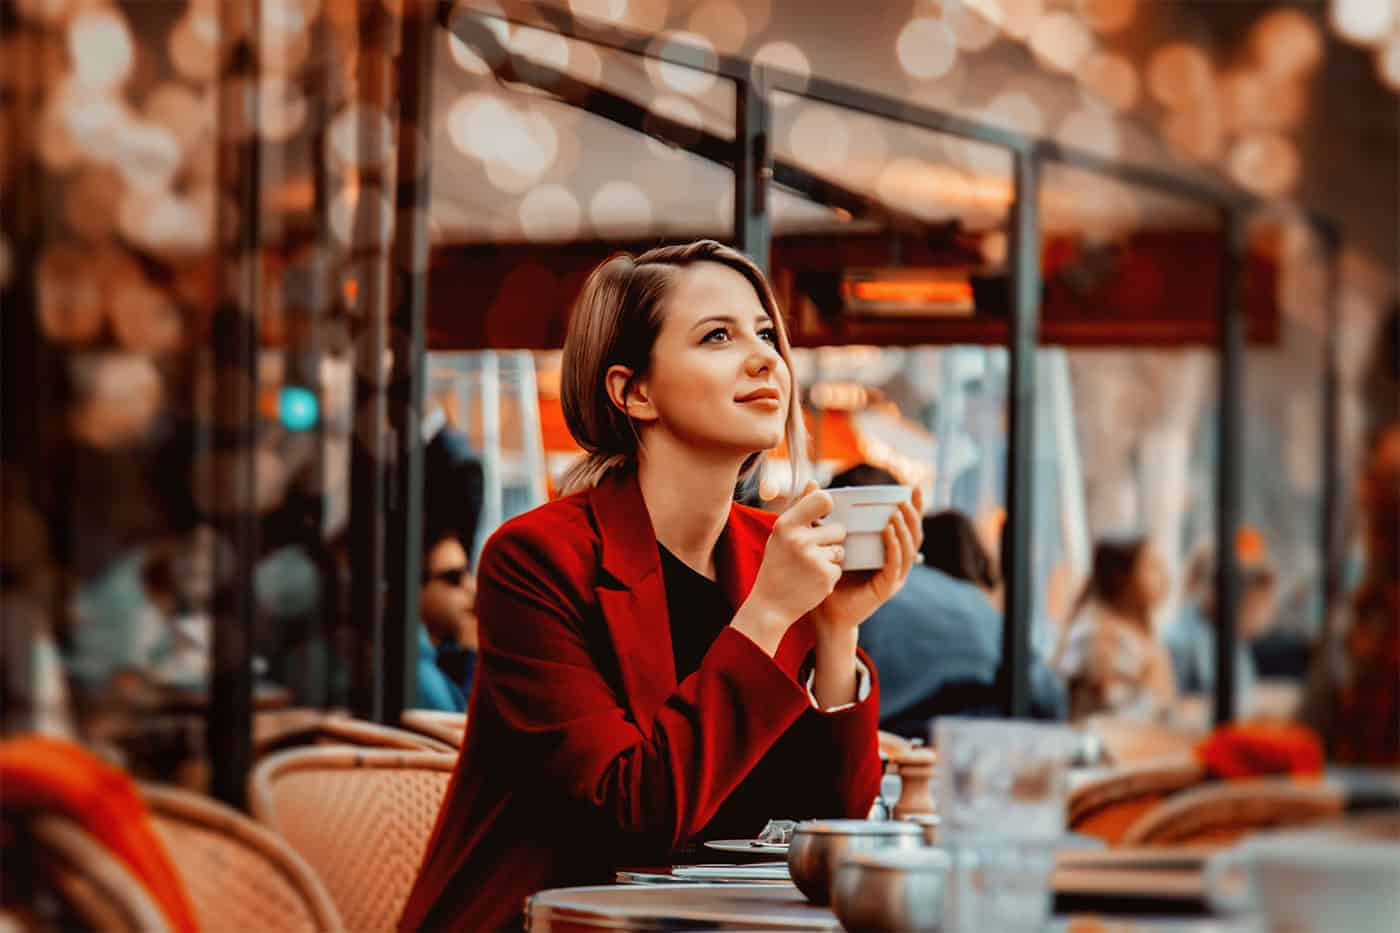 France's capital city Paris offers a unique work and lifestyle experience